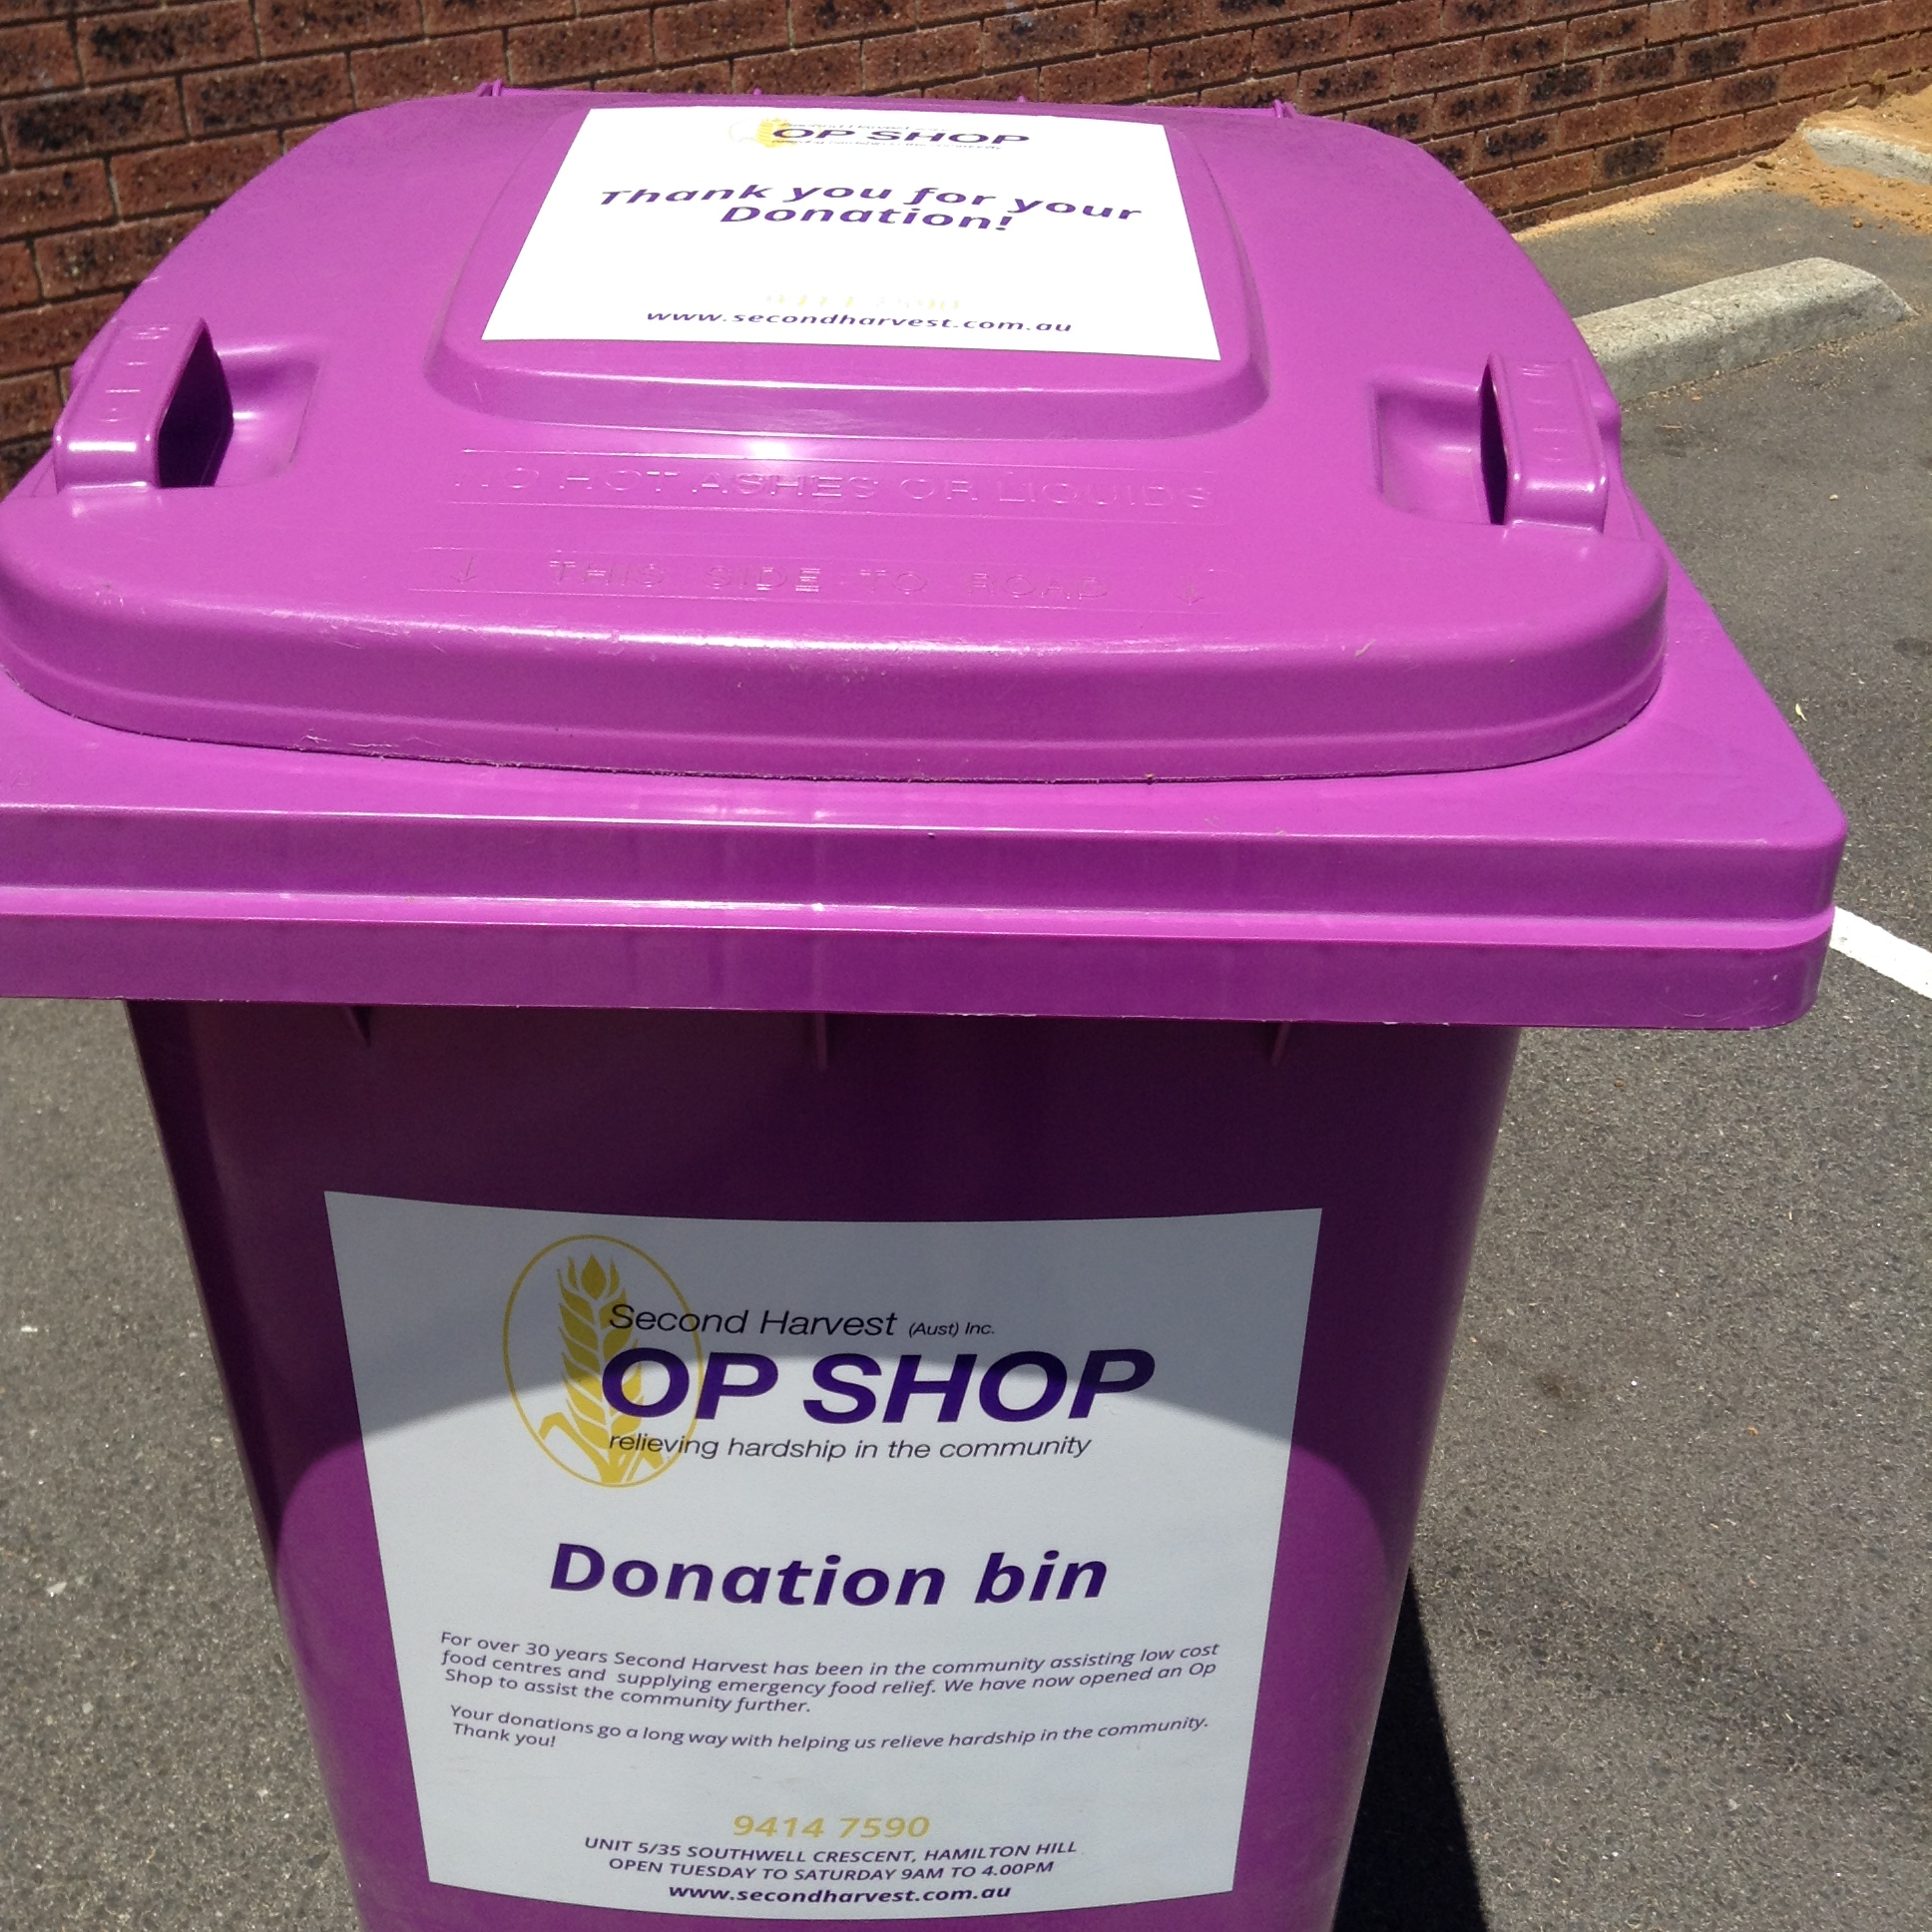 .... the purple donation bin is located outside the Op Shop!